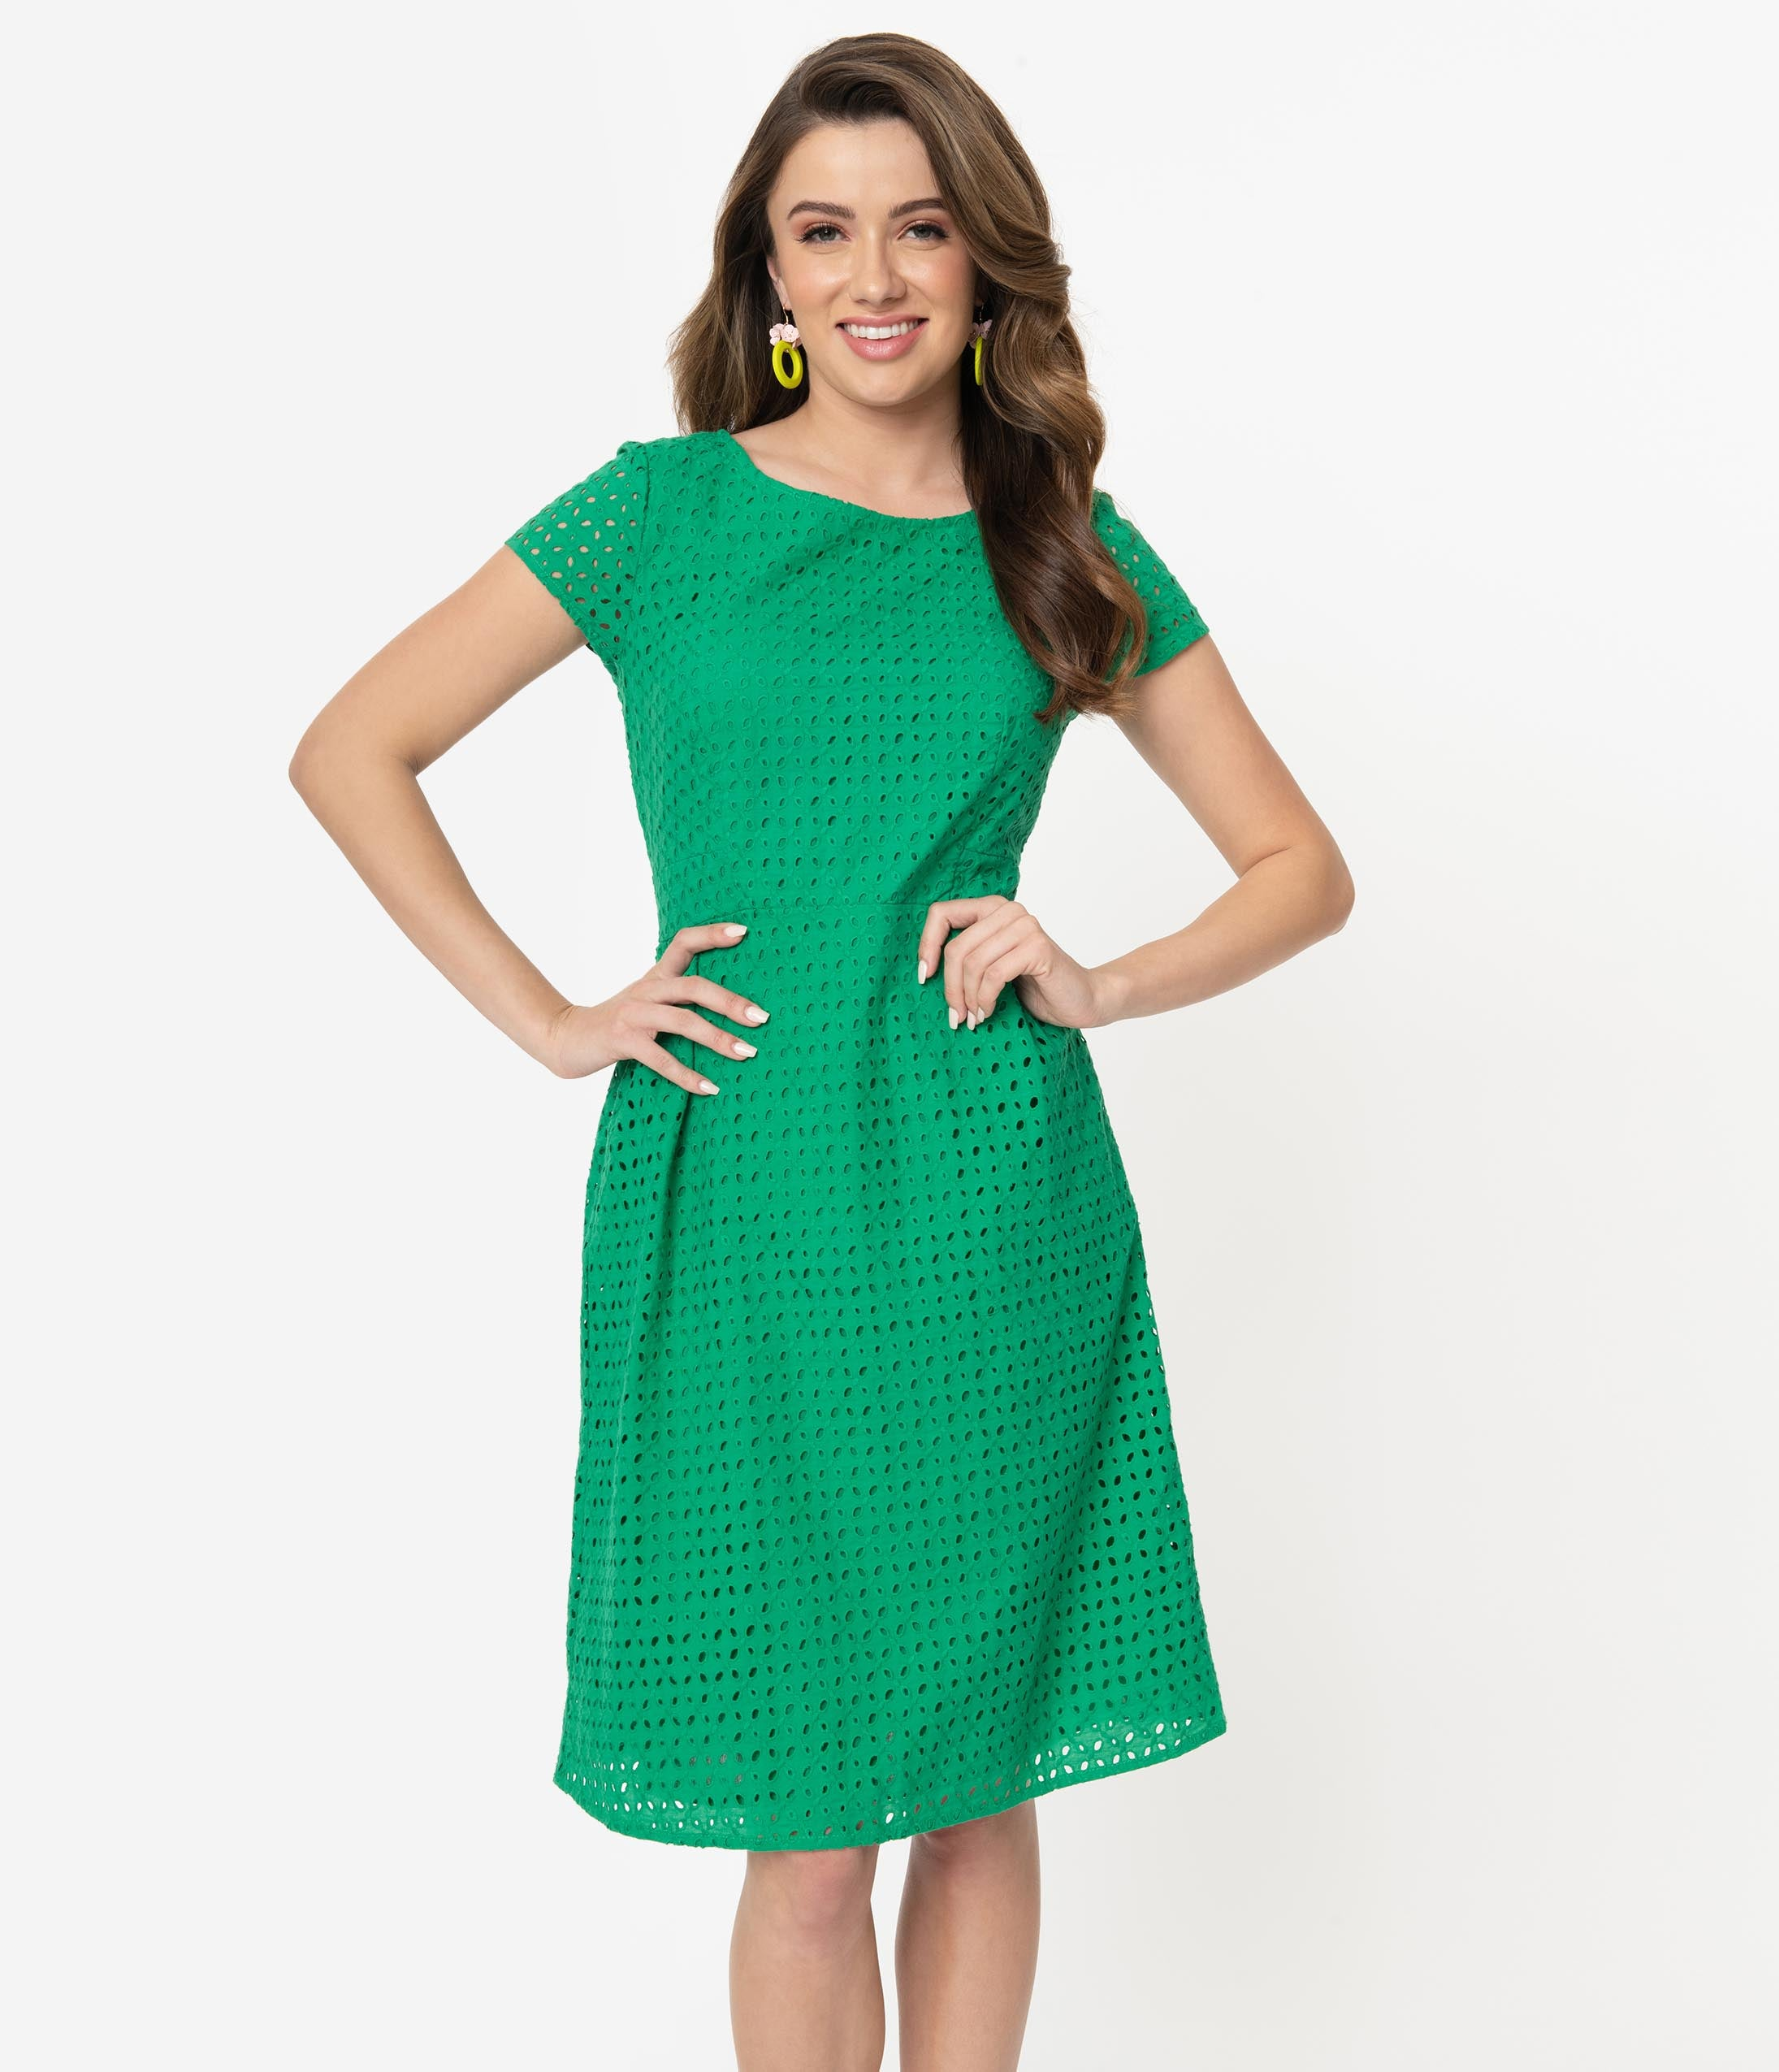 500 Vintage Style Dresses for Sale | Vintage Inspired Dresses Green Broderie Anglaise Jill Summer Dress $98.00 AT vintagedancer.com